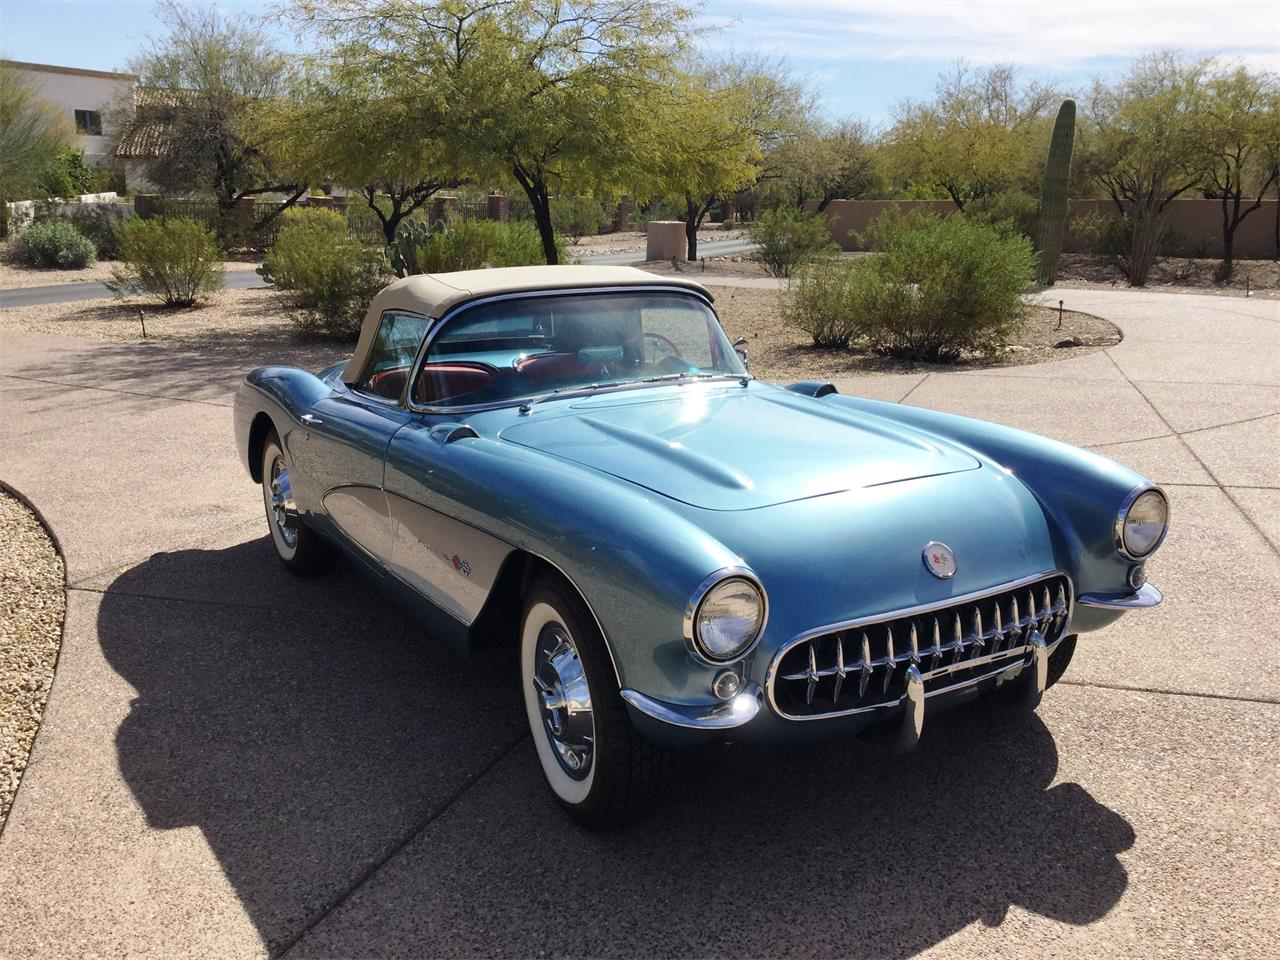 Large Picture of '57 Chevrolet Corvette - $118,000.00 Offered by a Private Seller - L7W8